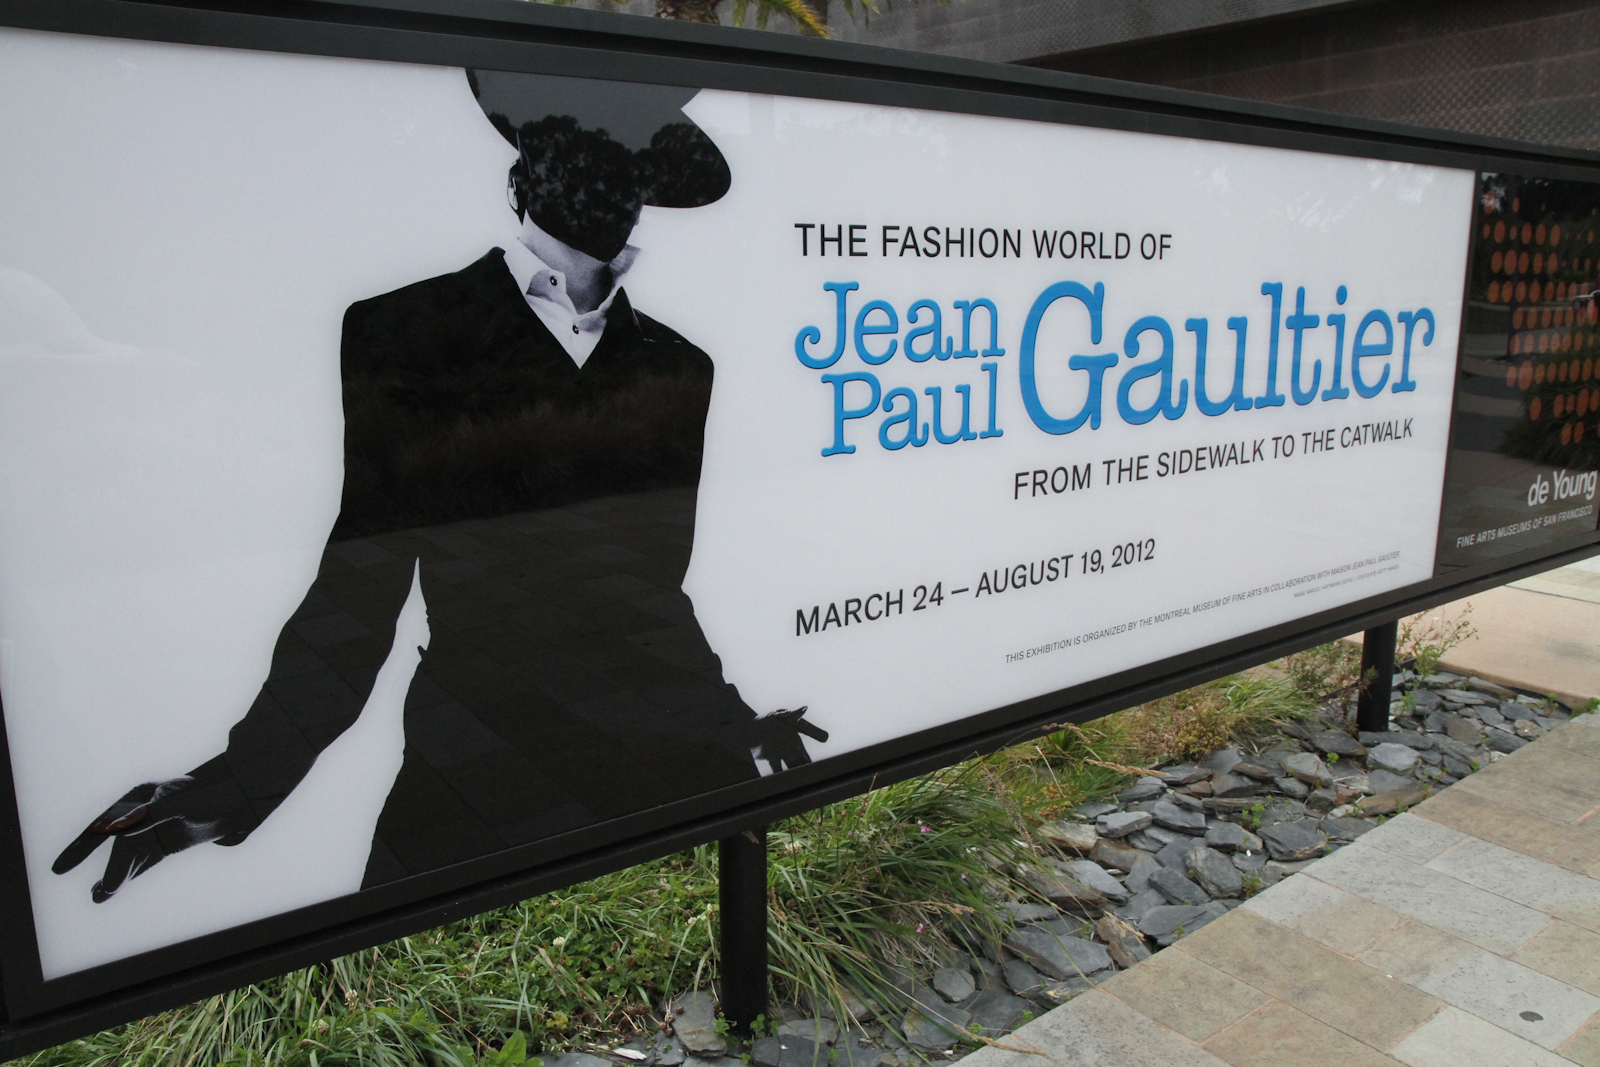 Gaultier on Display